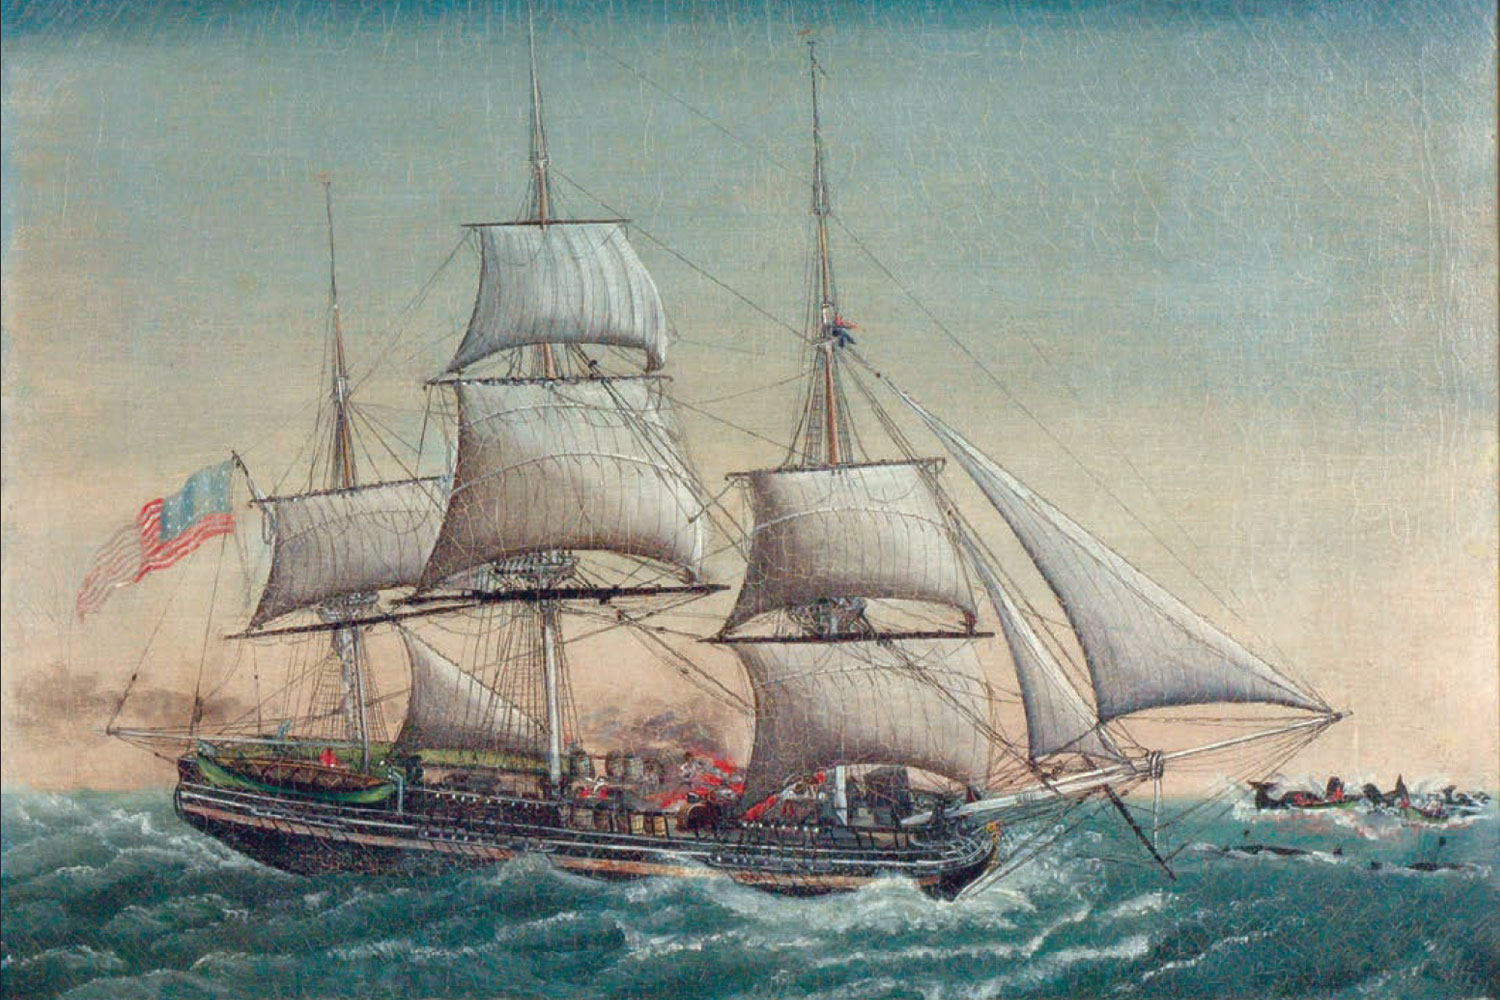 """Ship Spermo Trying With Boats Among Whales On California 1821,"" by J. Fisher, ca. 1823."